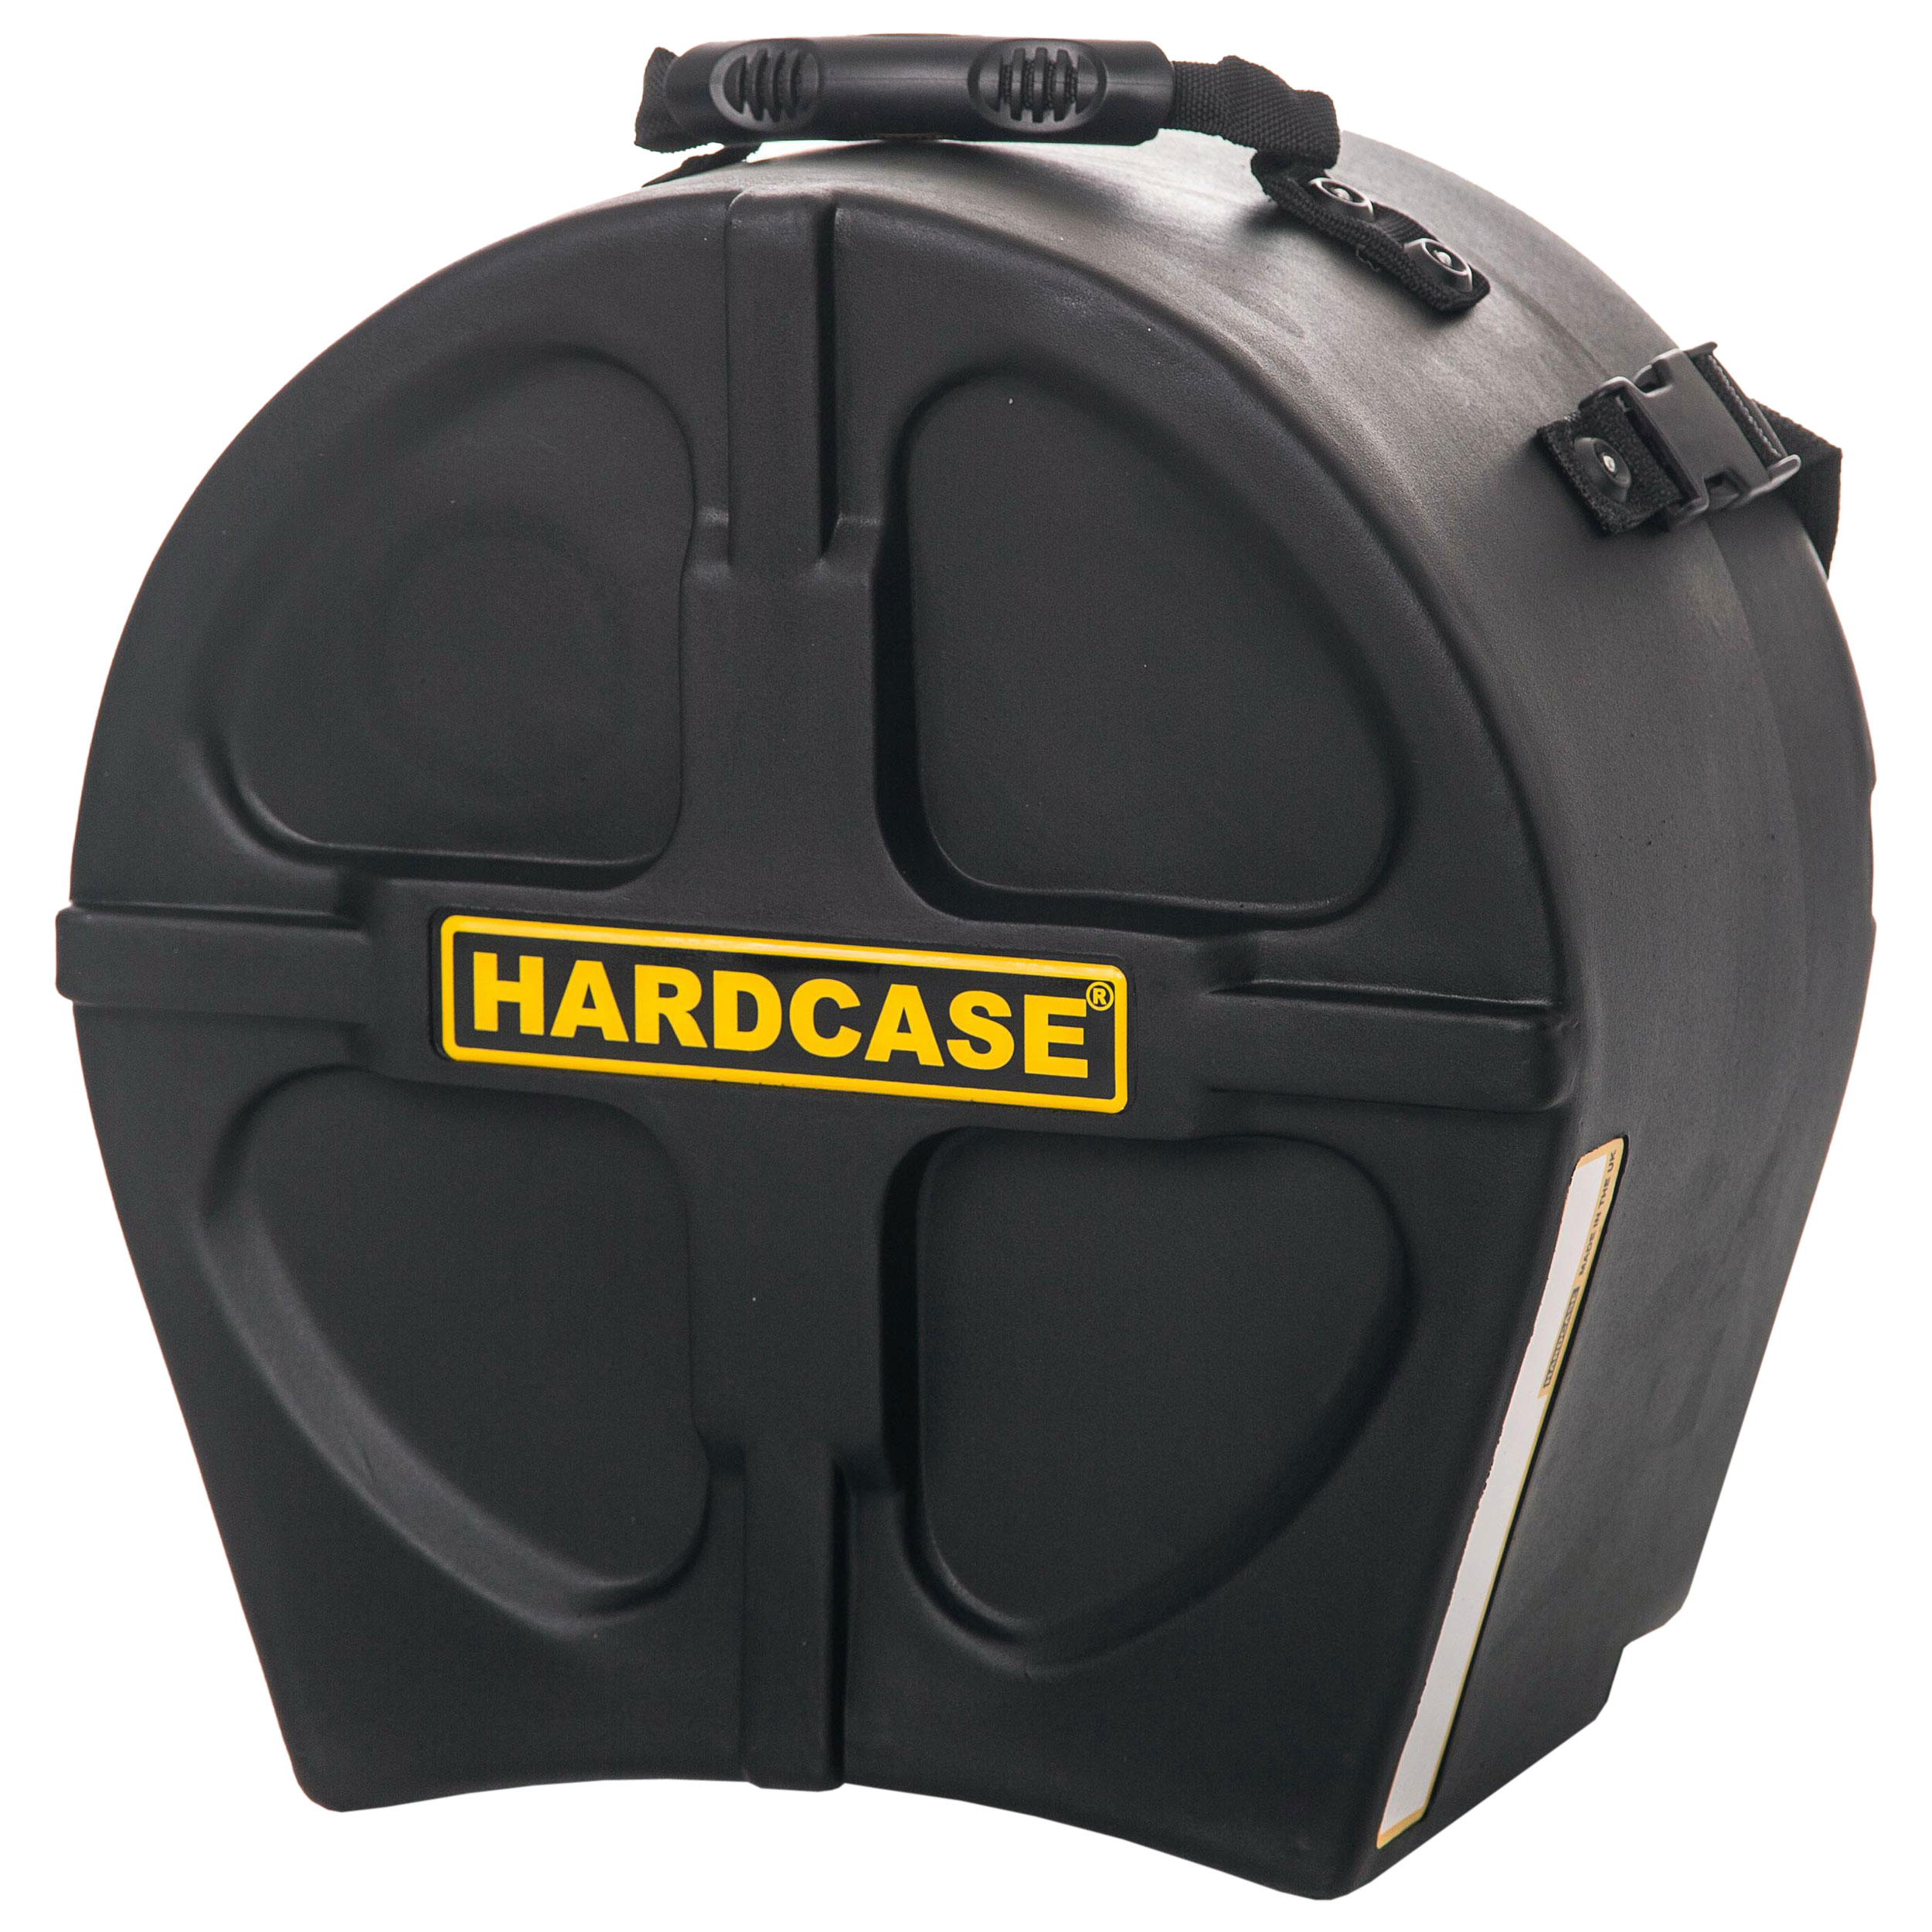 "Hardcase 12"" (Diameter) x 8-to-12"" (Deep) Tom Case"